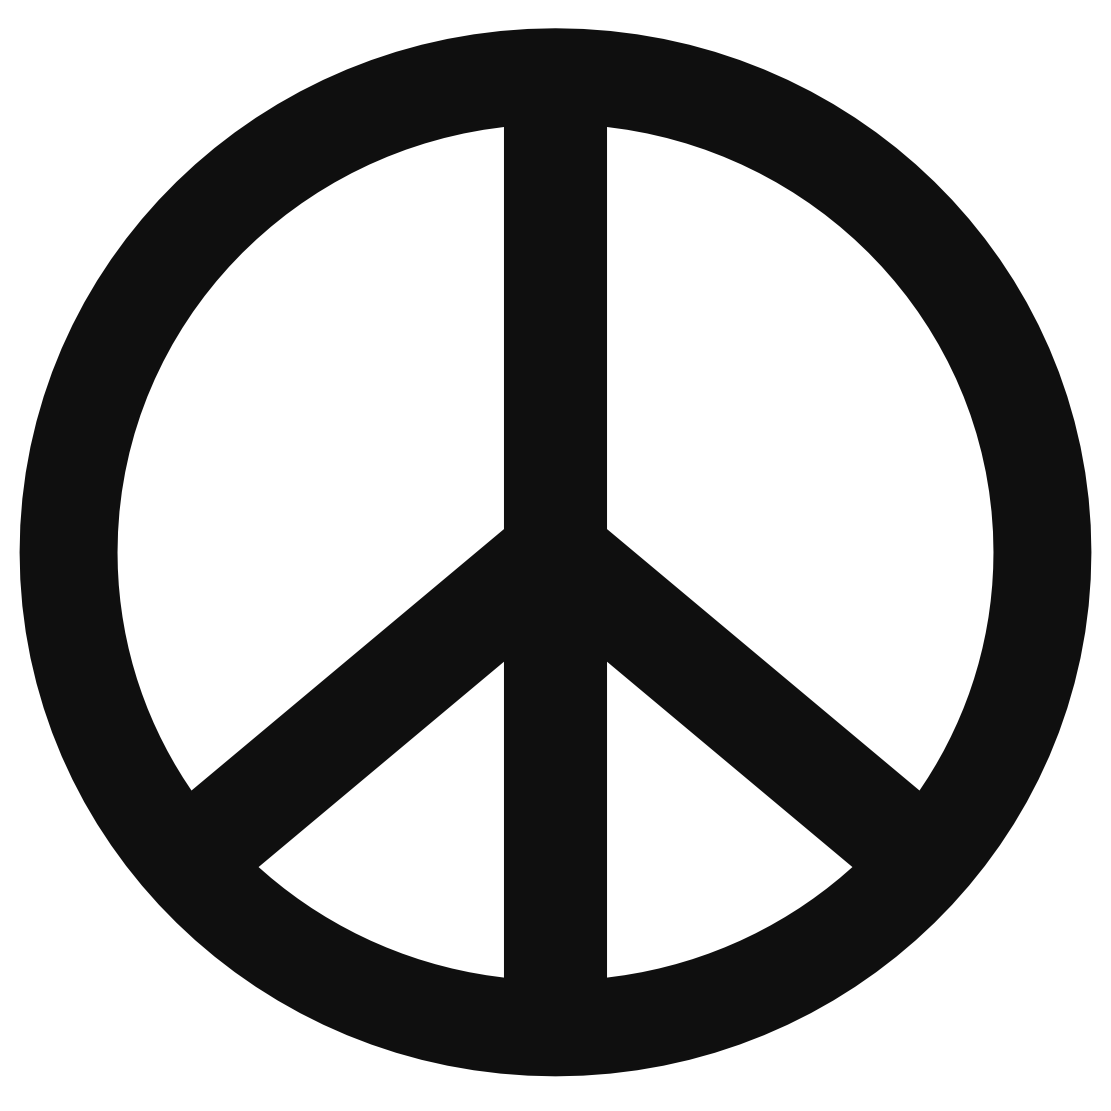 Peace Sign clipart Sign clipart templates Clipartix templates